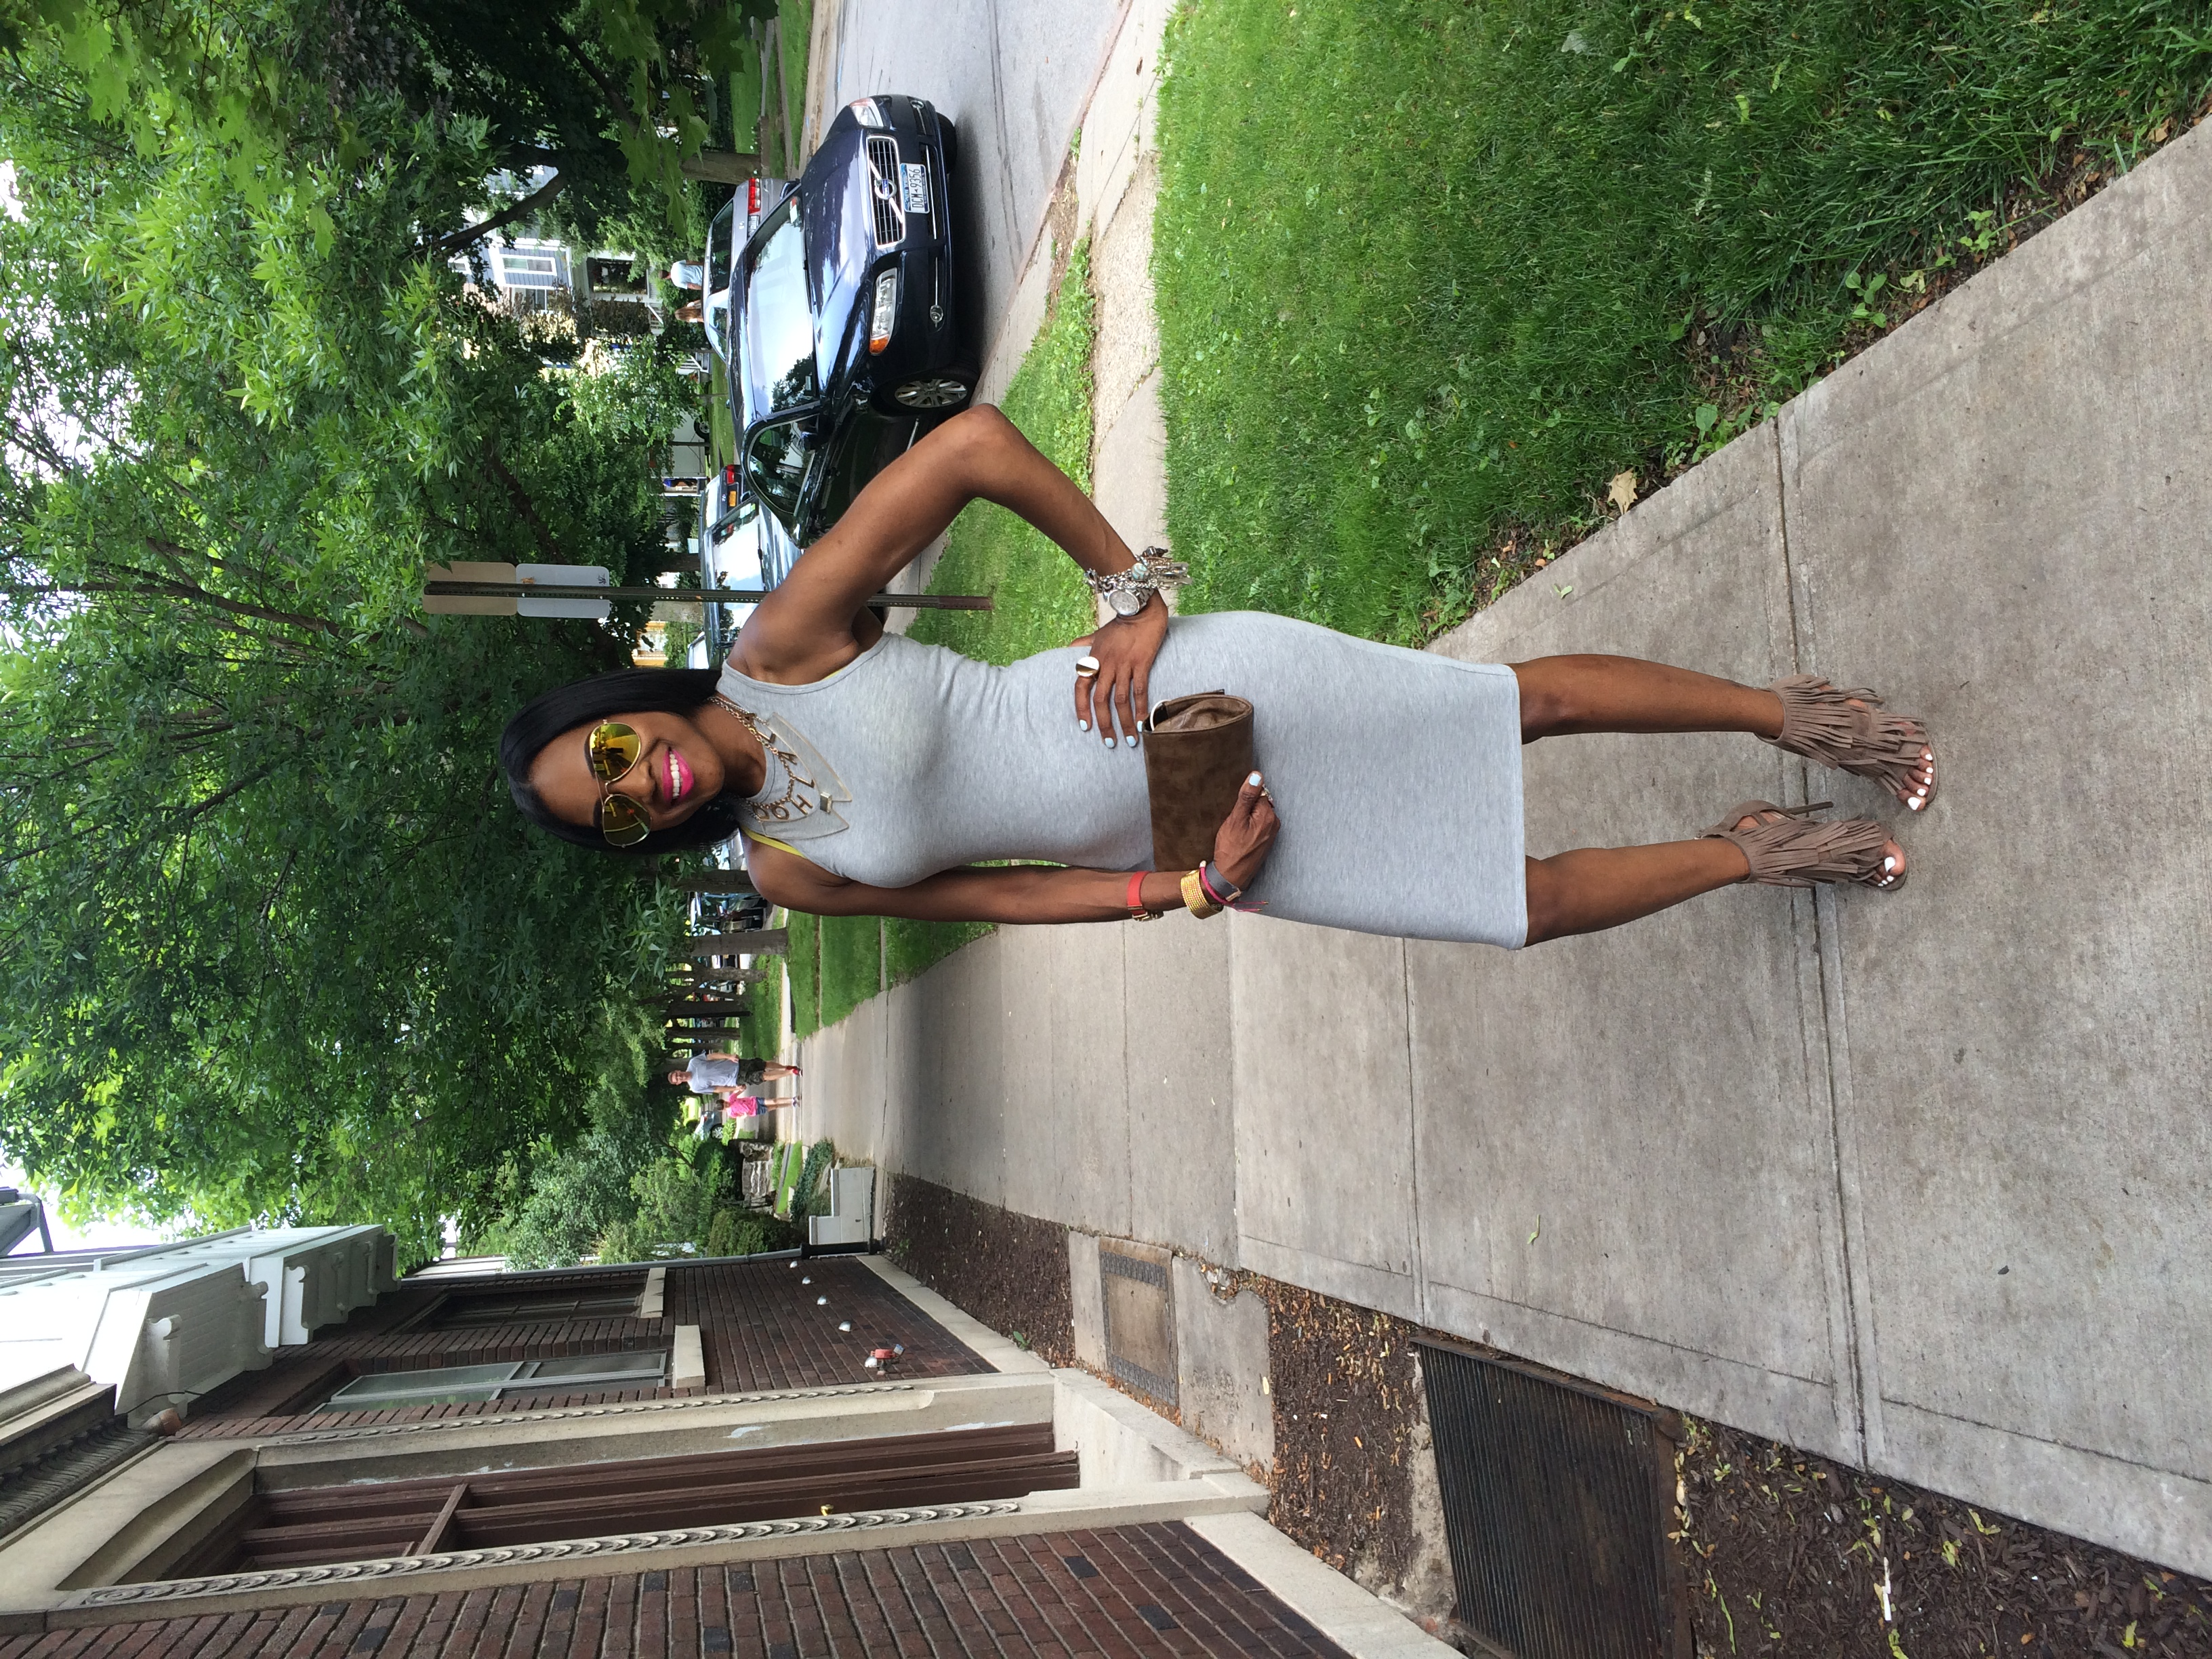 Style-Files-forever-21-heathered-midi-dress-lulus-Gypsy-Queen Taupe-Suede-Fringe Dress-Sandals-mirrored-tint-sunglasses-birthday-behavior-ooh-la-la-blog-jday-